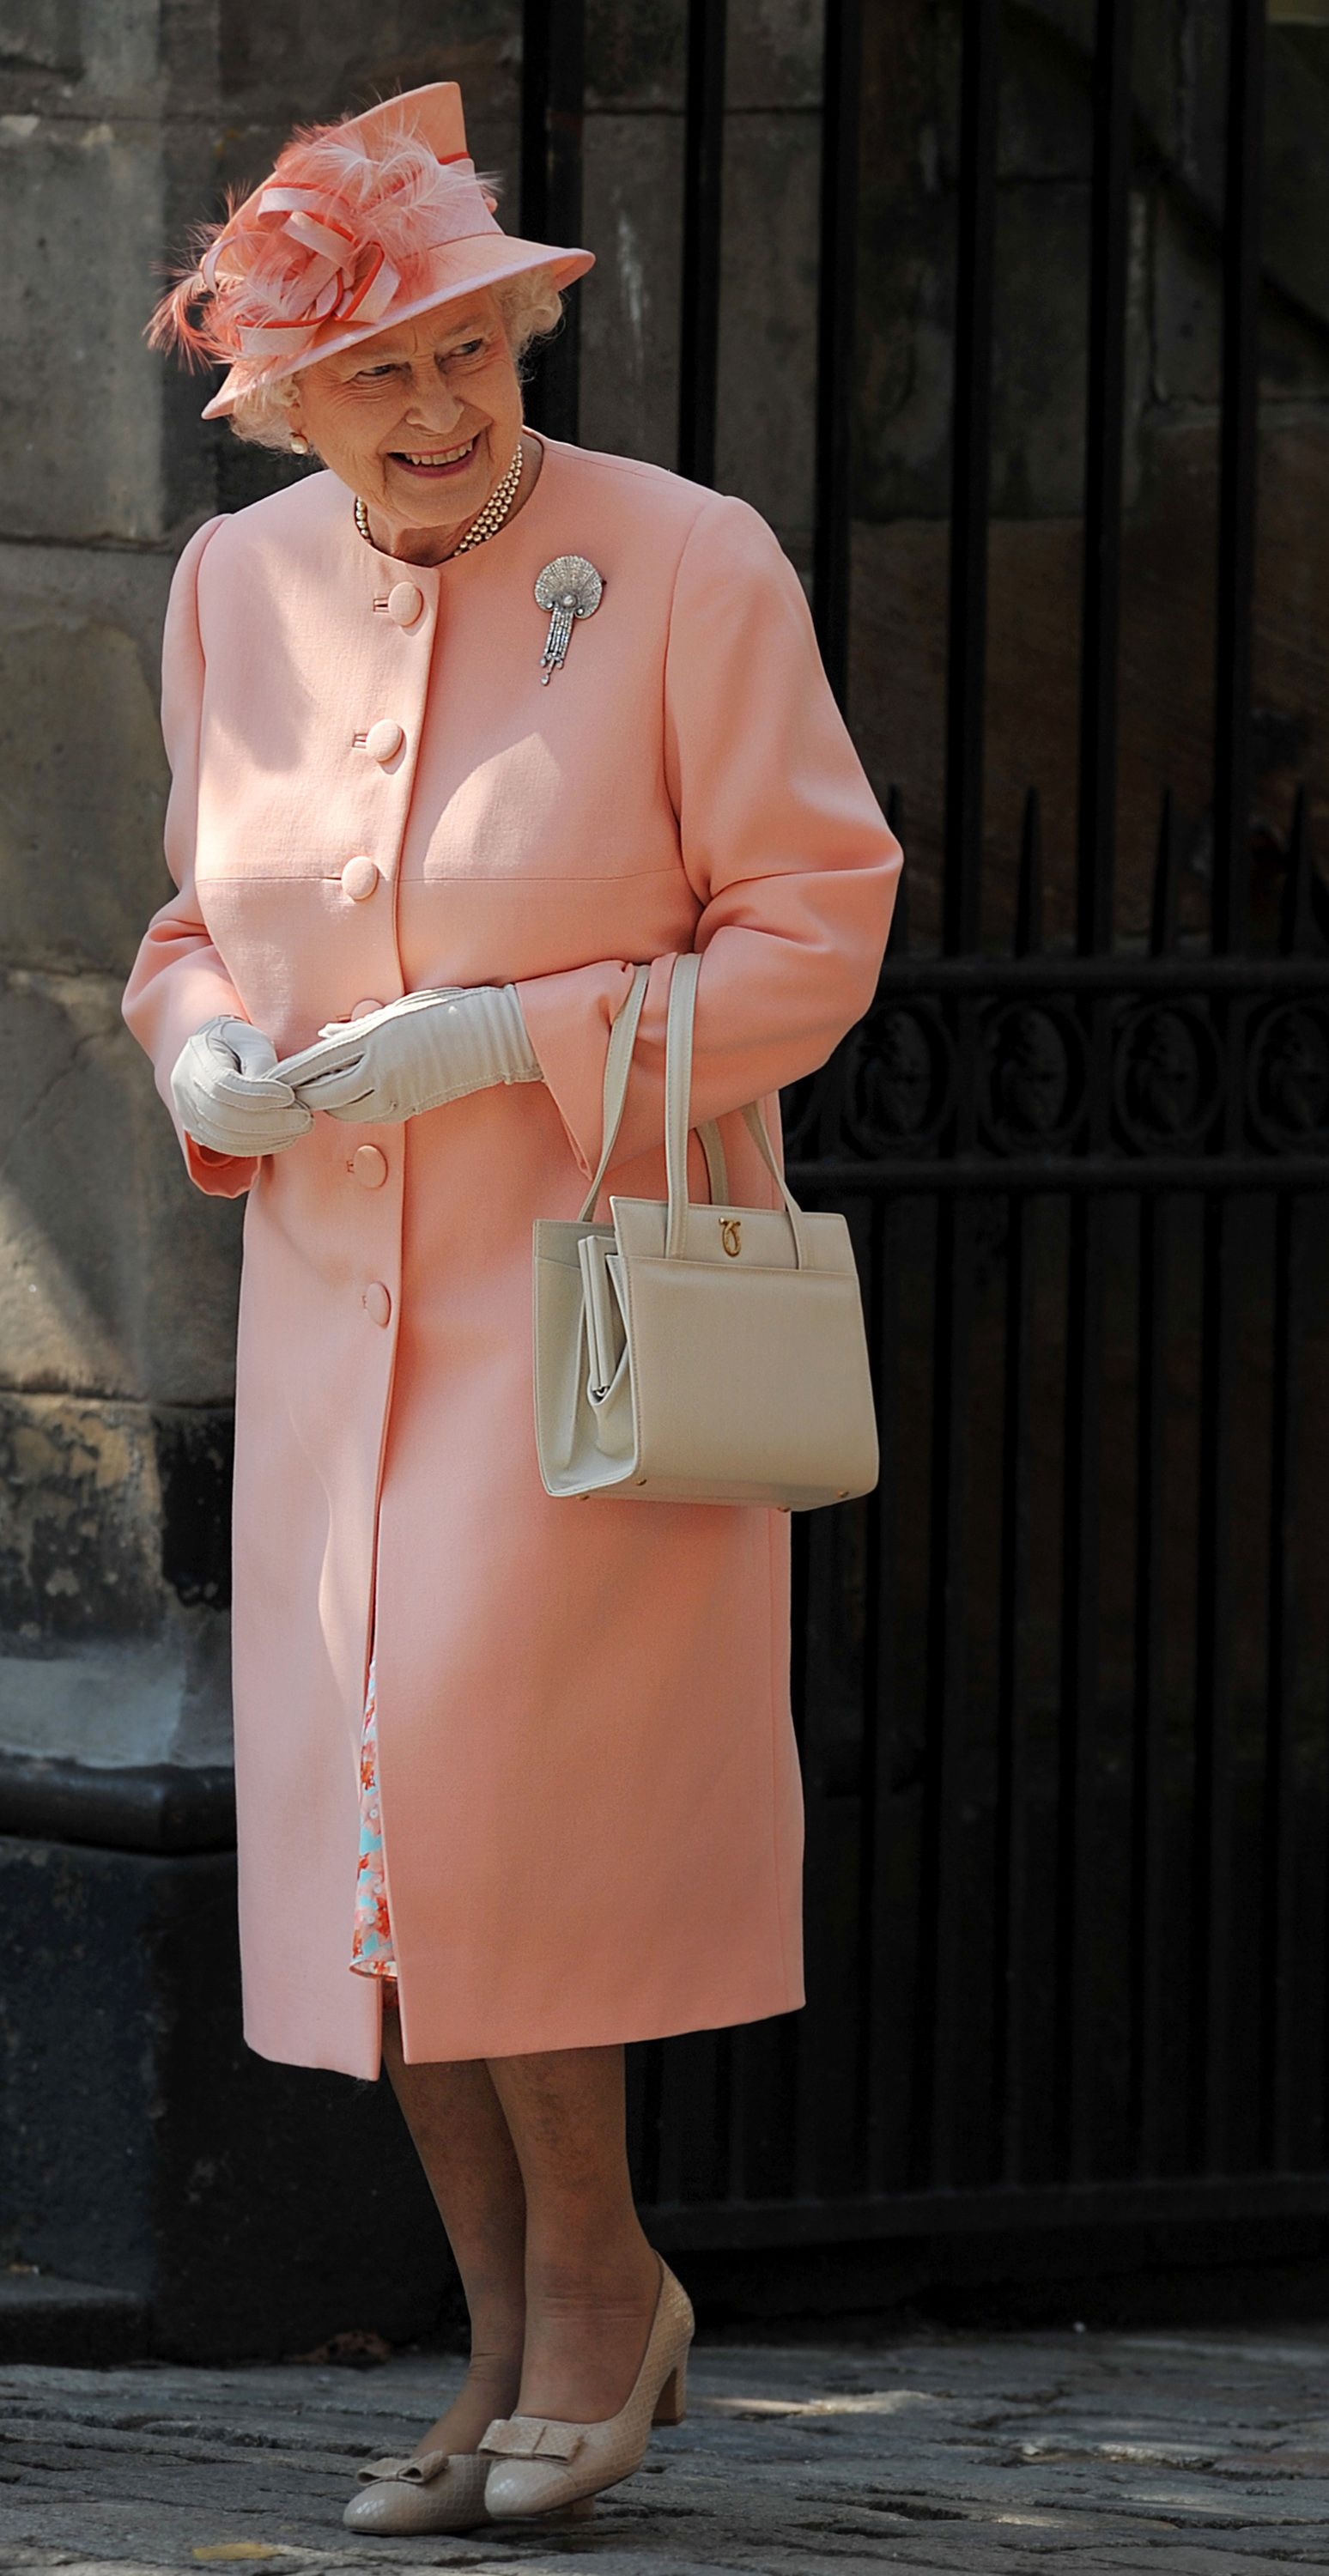 The same year that William and Kate tied the knot, Queen Elizabeth also celebrated the marriage of her granddaughter, Princess Anne's daughter Zara Phillips . To watch Zara marry rugby player Mike Tindall , the Queen looked pretty in peach in a buttoned coatdress, angled peach hat, and the same neutral accessories she sported to William and Kate's nuptials.